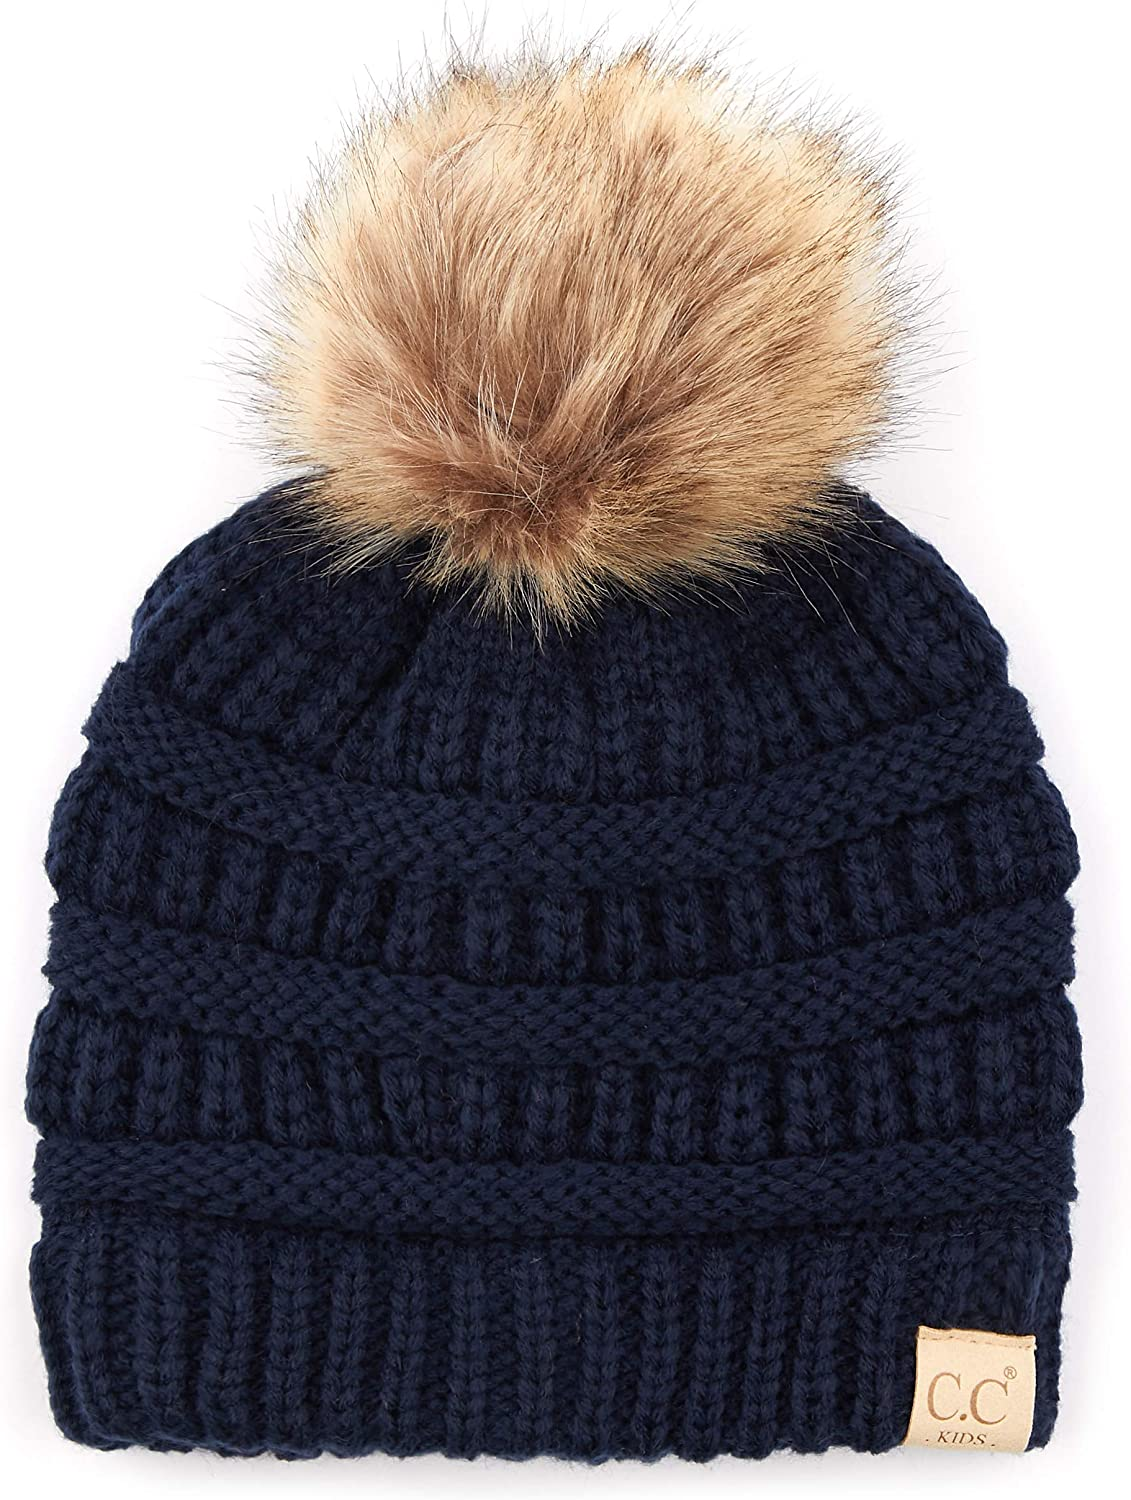 C.C Exclusives Solid Ribbed Kids Beanie Hat with Faux Fur Pom KIDS-43